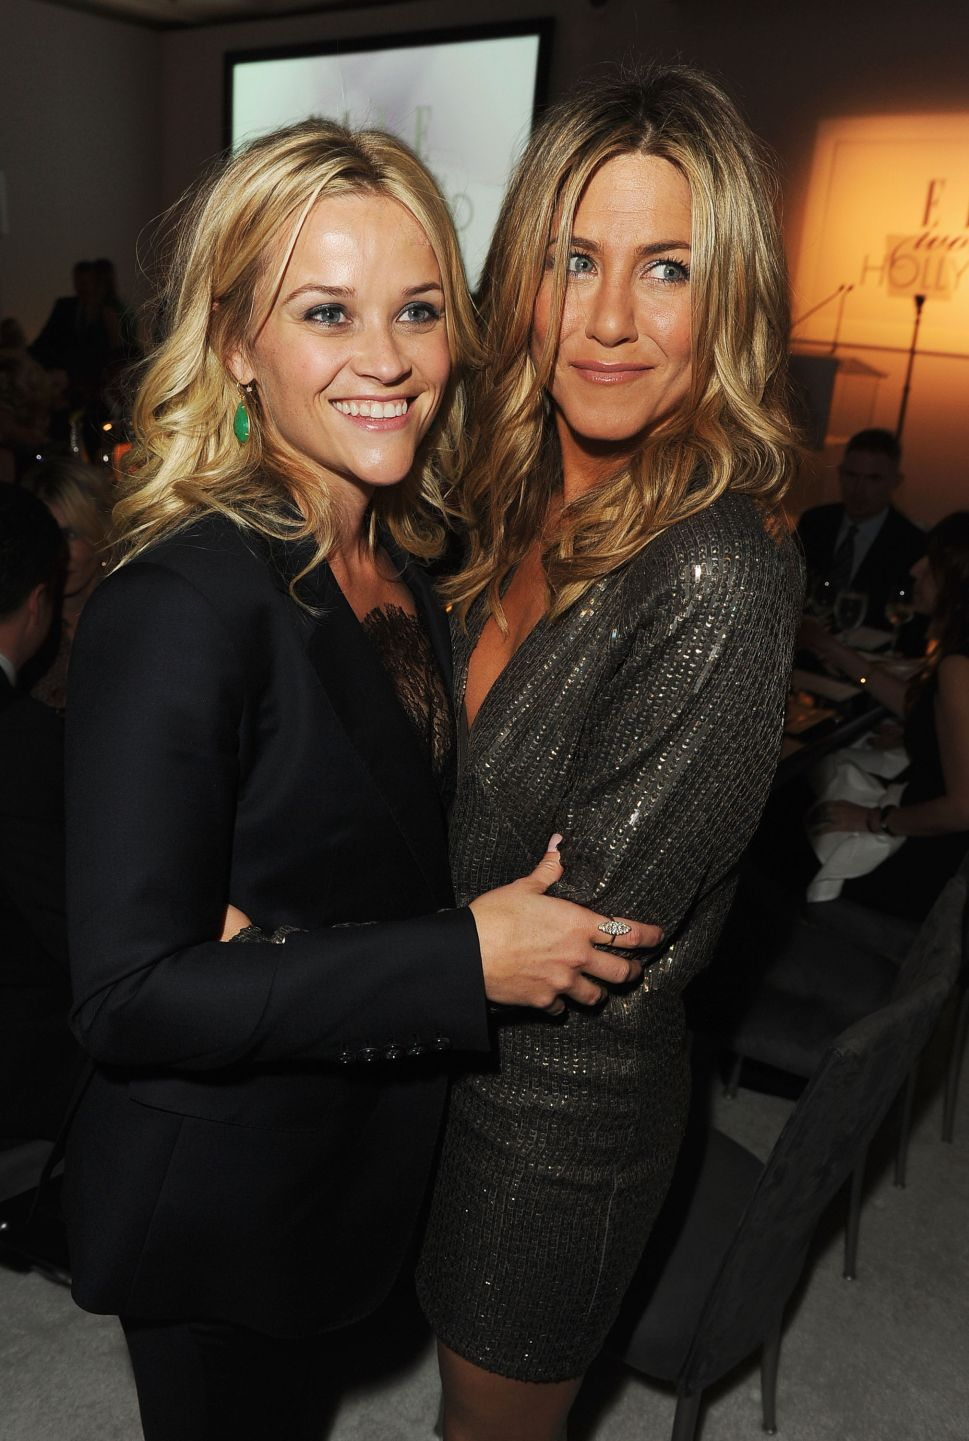 Apple Snags New TV Drama From Jennifer Aniston and Reese Witherspoon